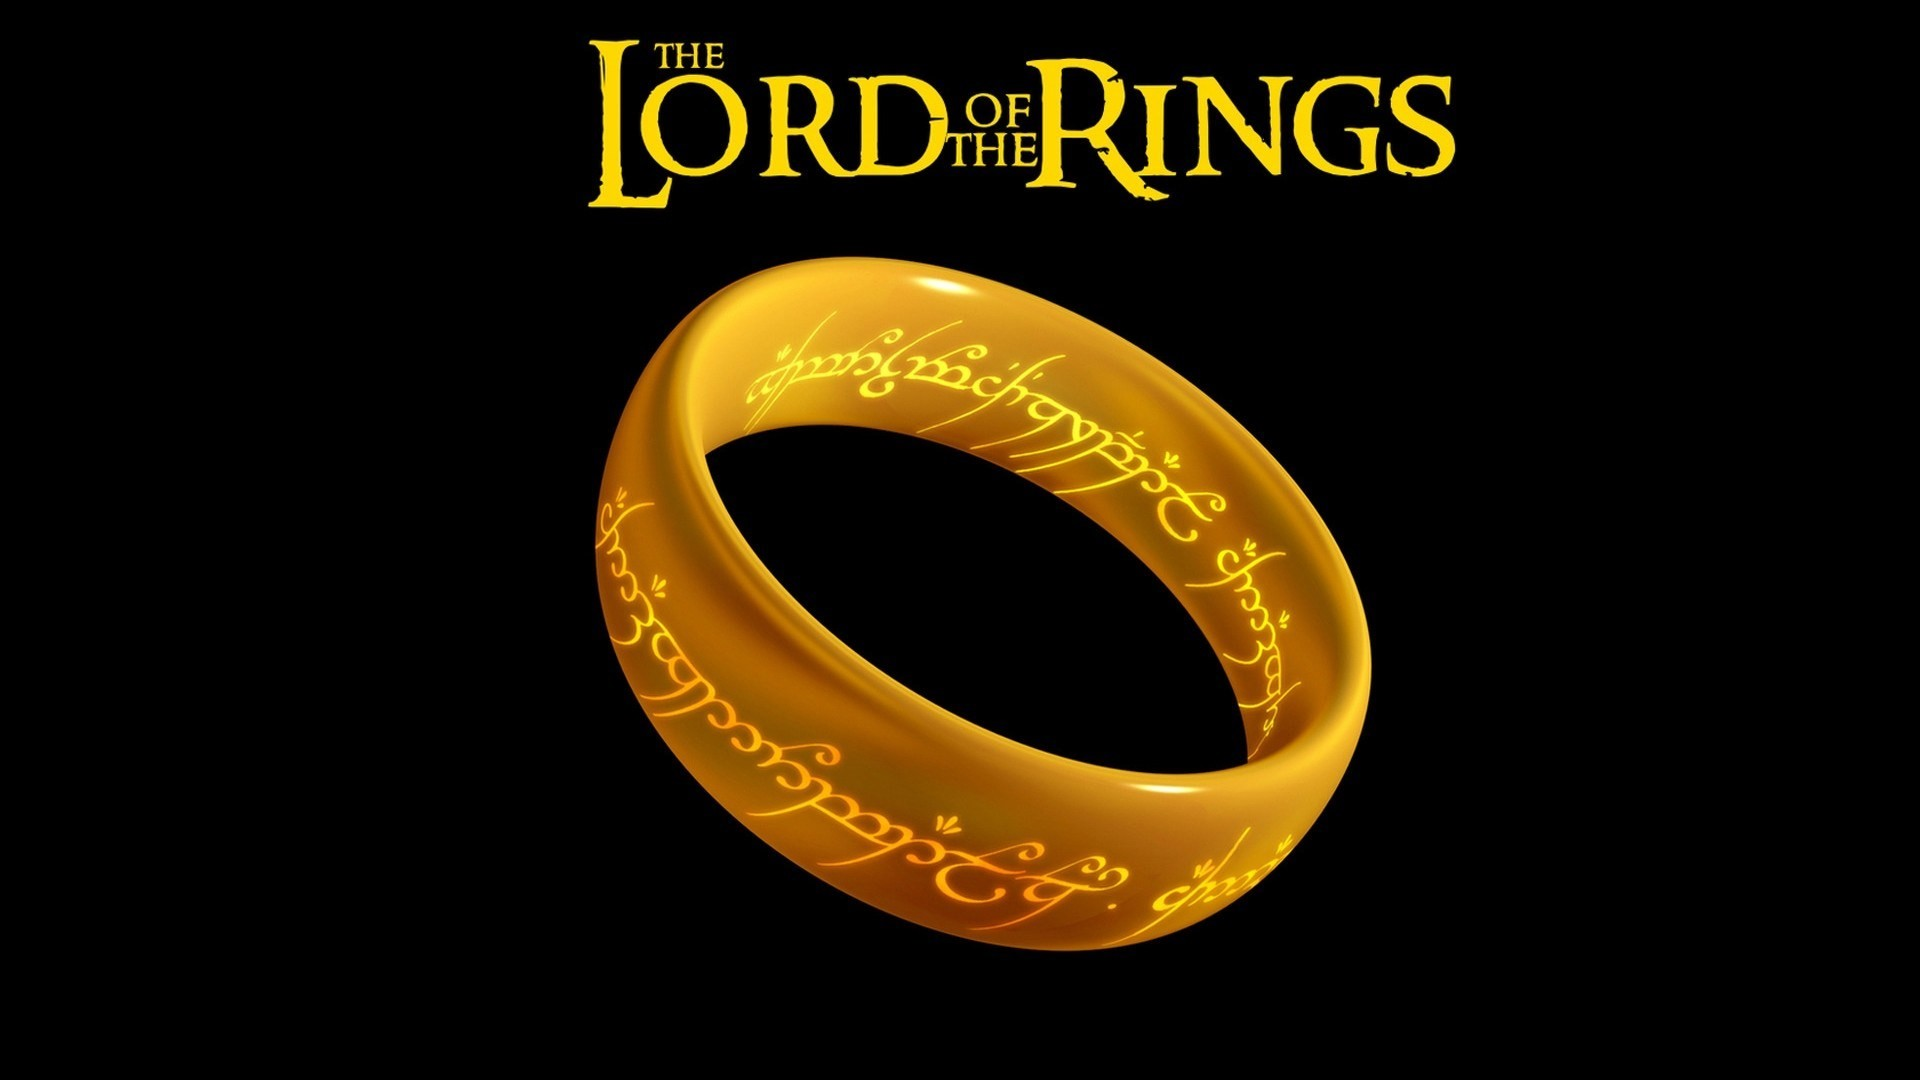 lord of the rings iphone wallpaper …